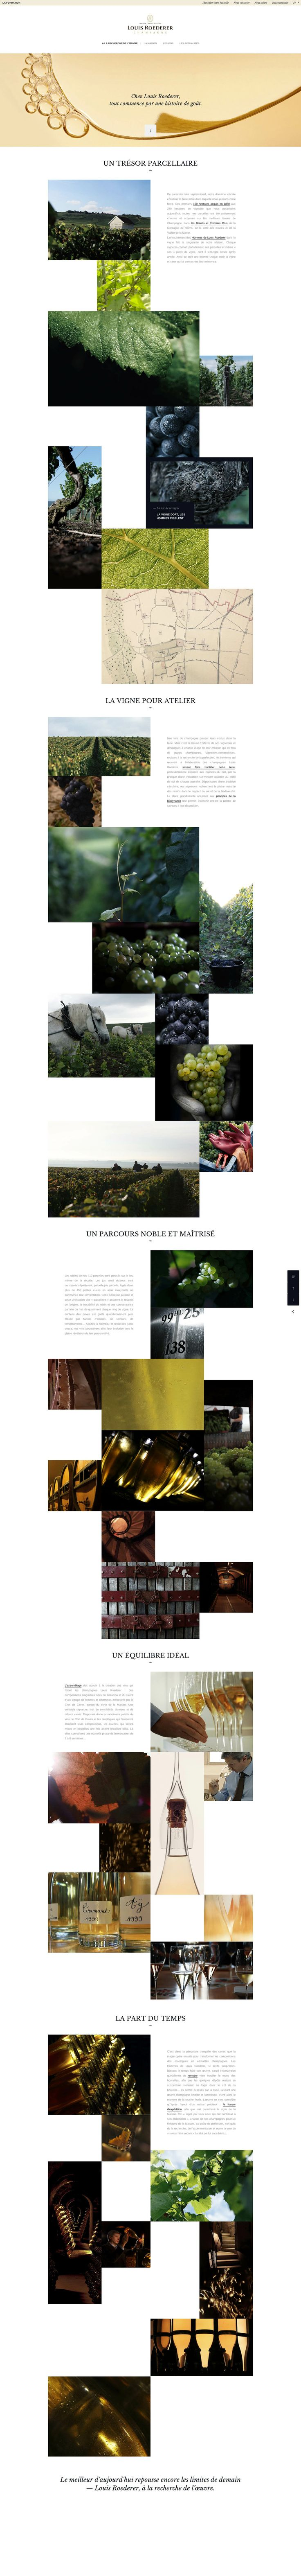 Champagne Louis Roederer  Clean & beautiful web design with nice grid. www.louis…